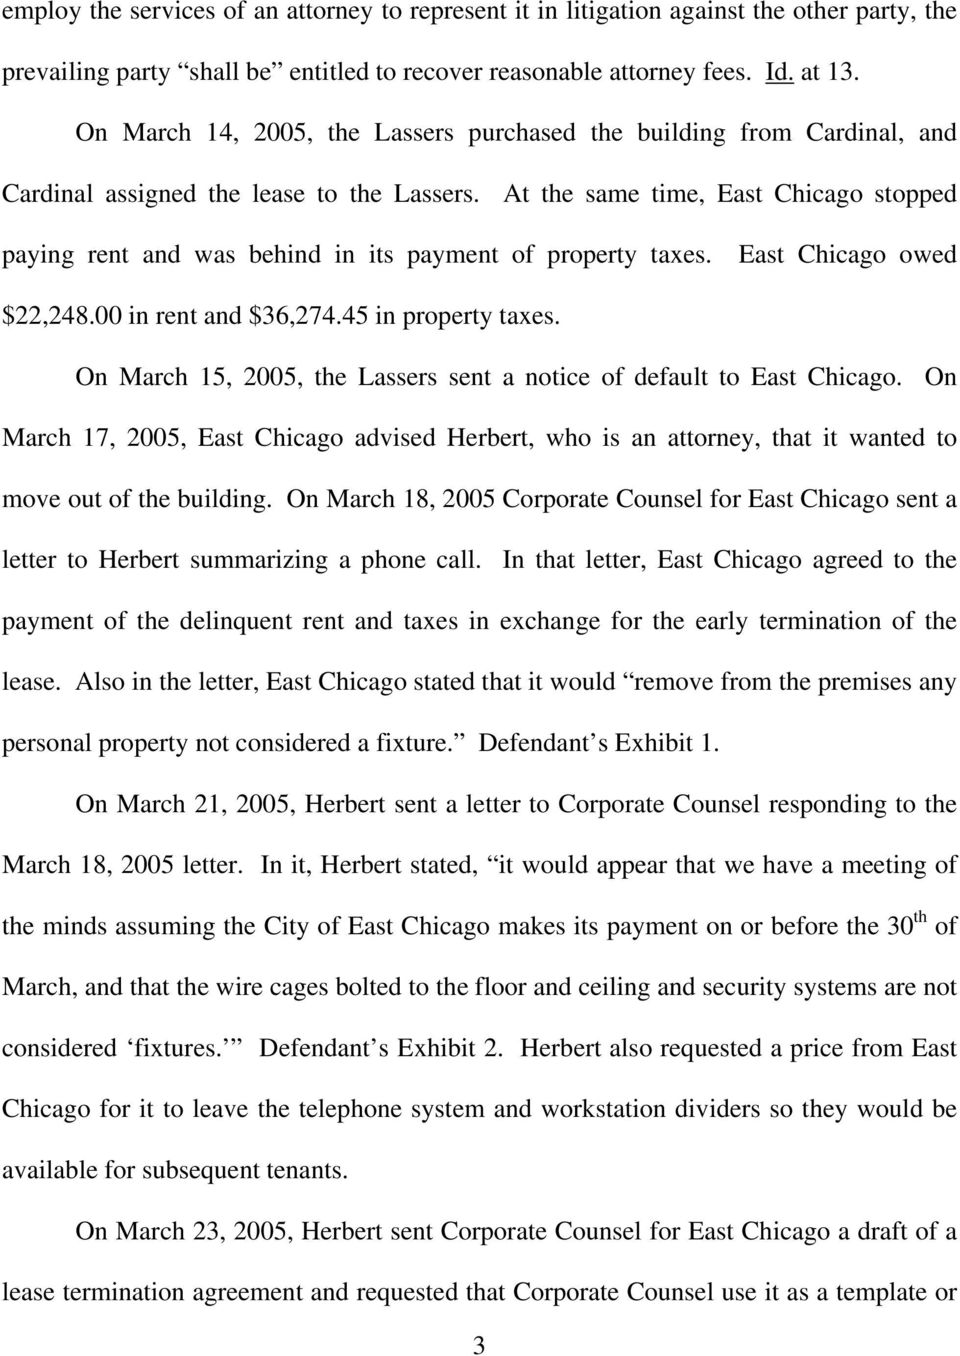 At the same time, East Chicago stopped paying rent and was behind in its payment of property taxes. East Chicago owed $22,248.00 in rent and $36,274.45 in property taxes.